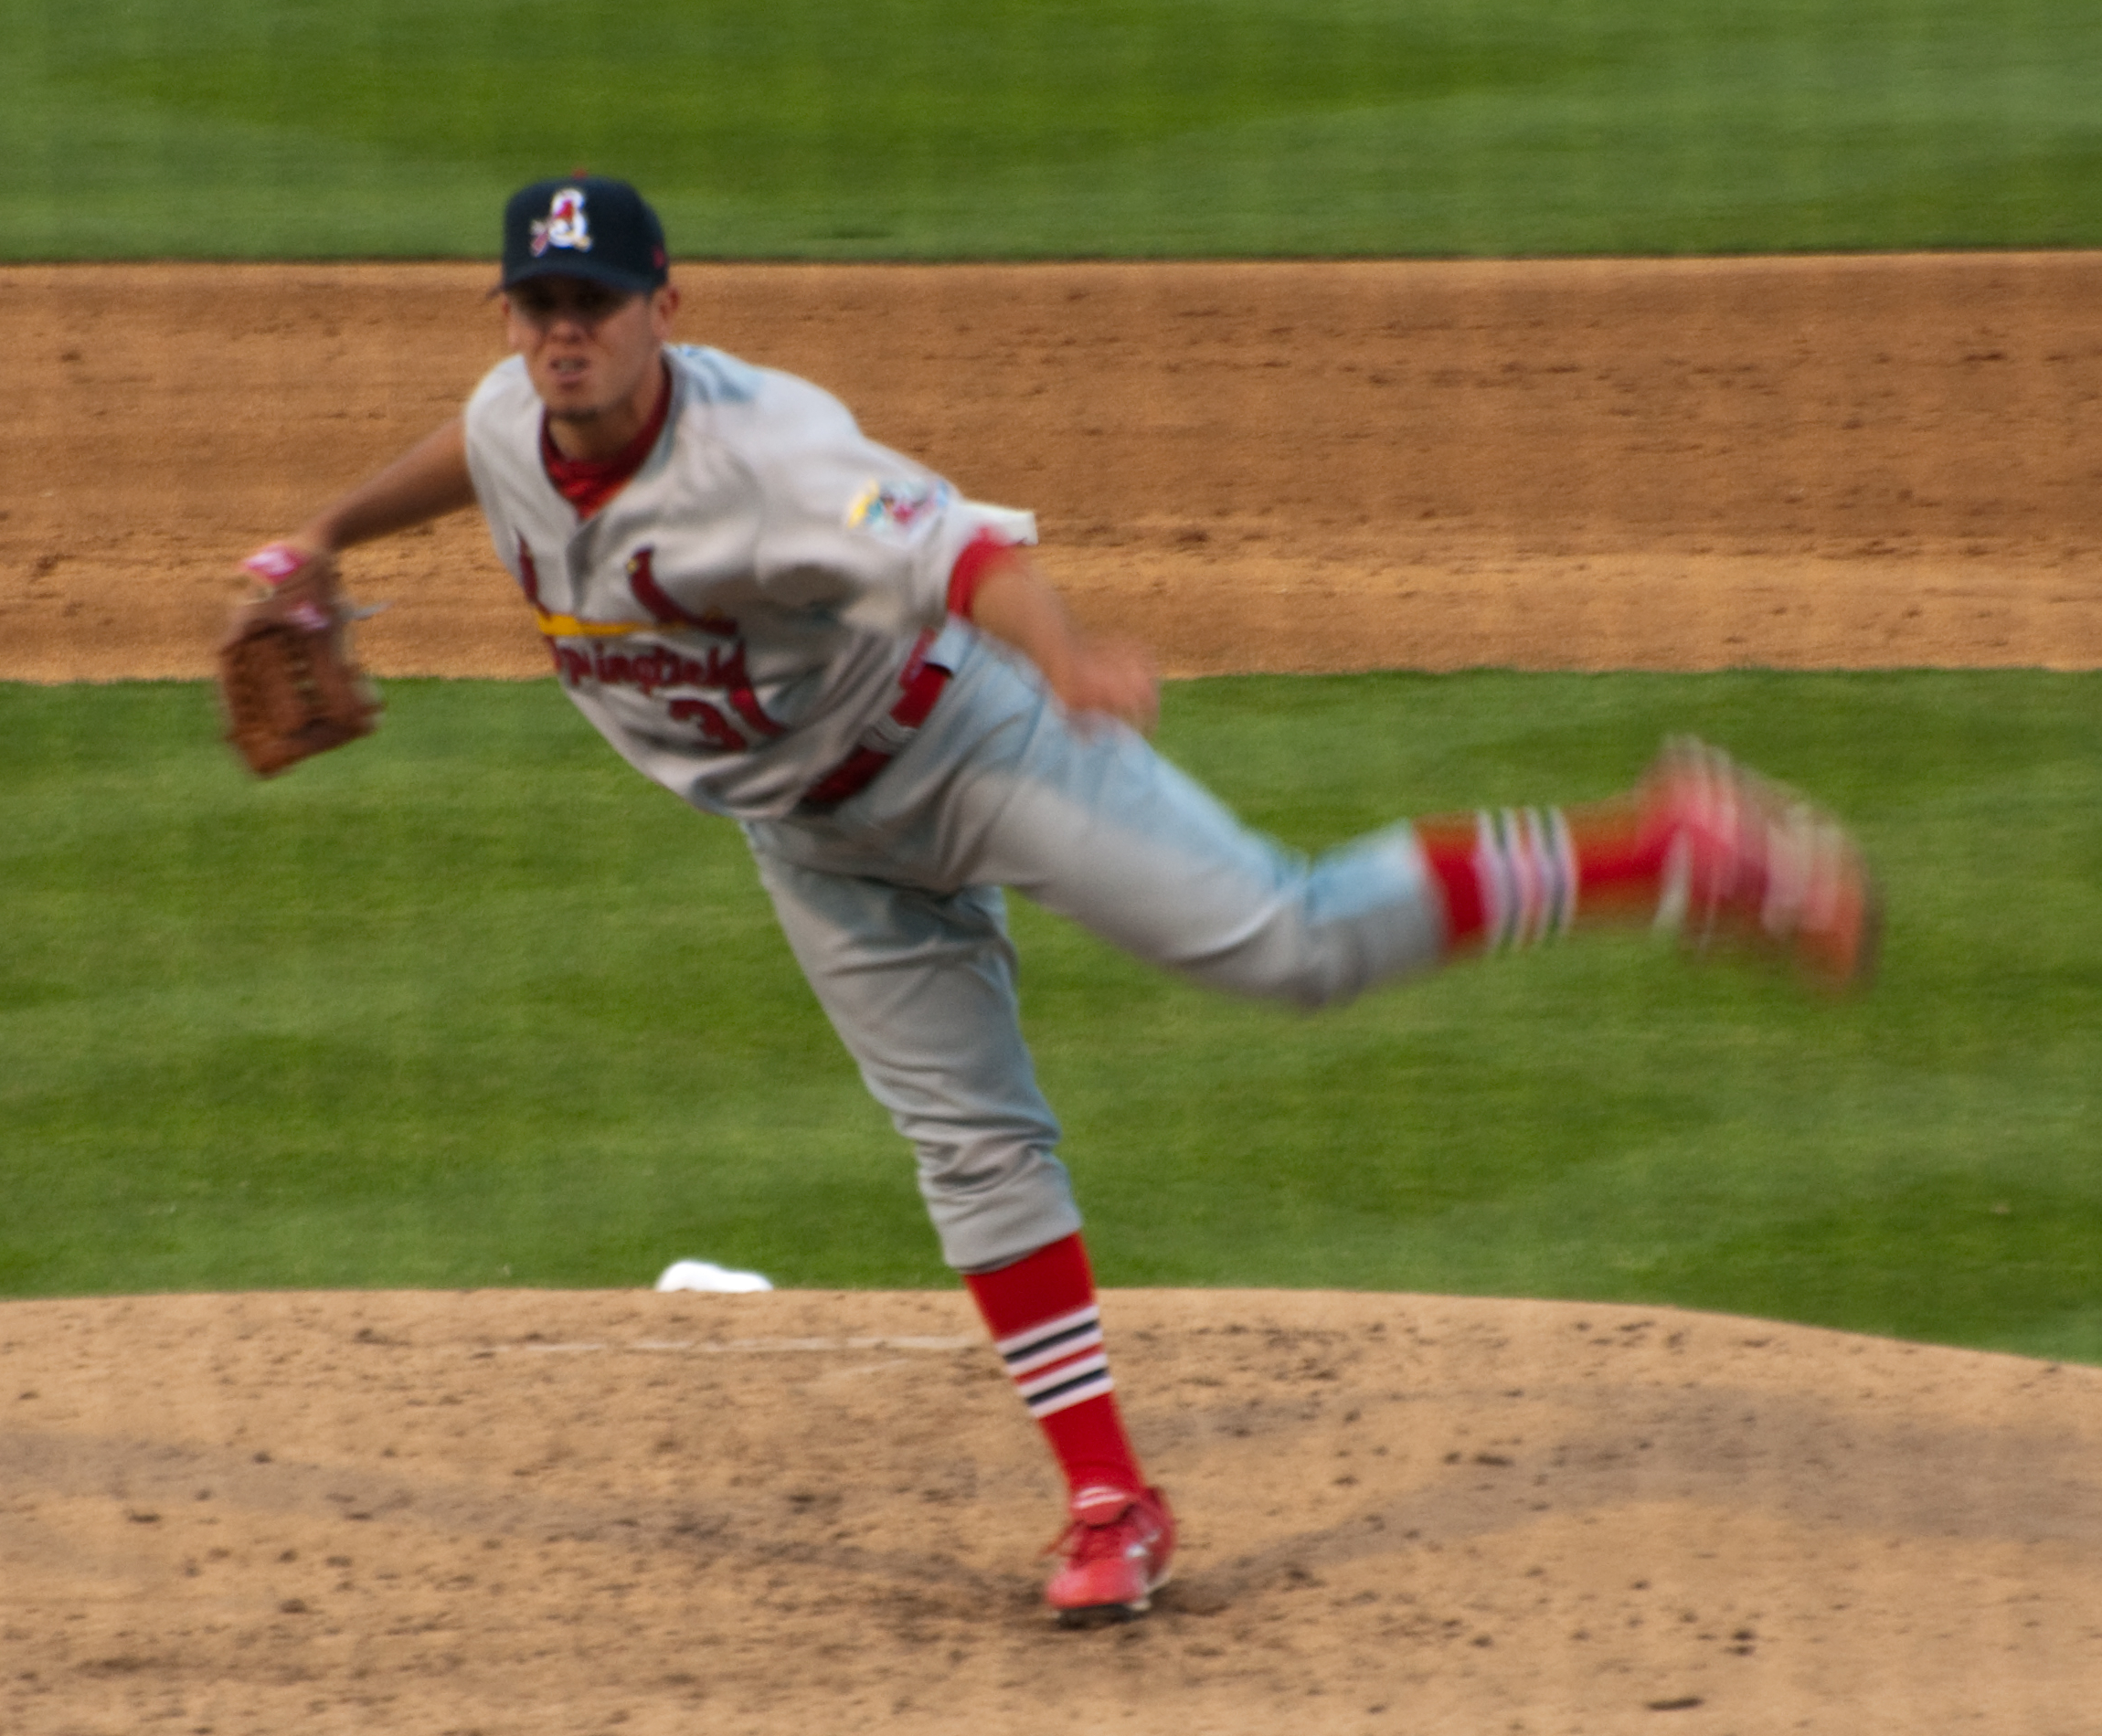 Springfield Cardinals Pitcher throwing a pitch